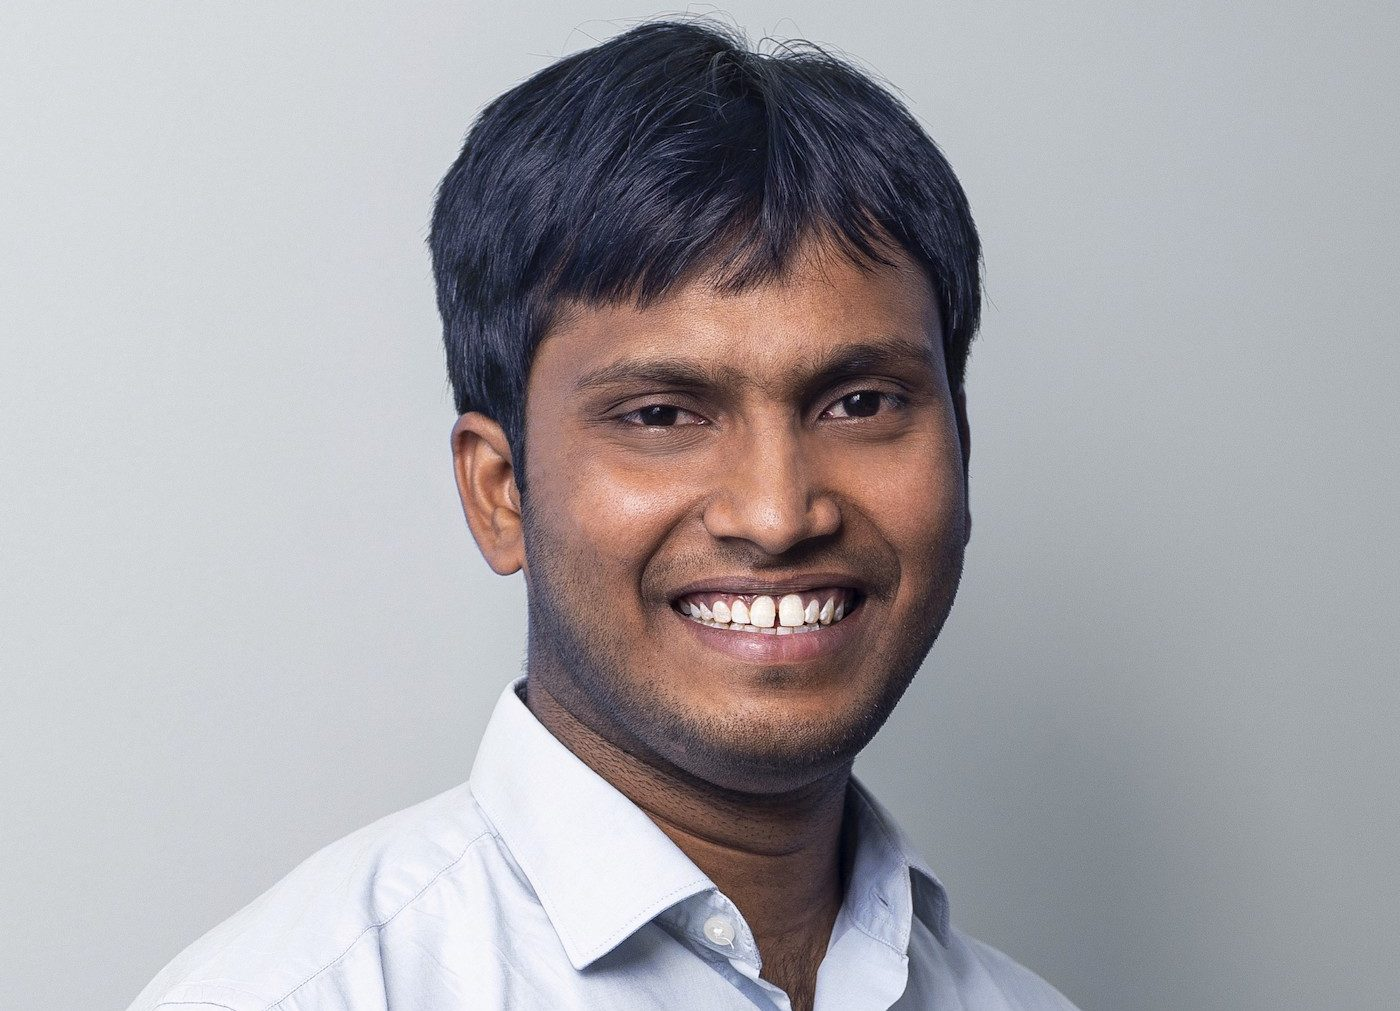 an-interview-with-raviteja-dodda,-ceo-of-moengage